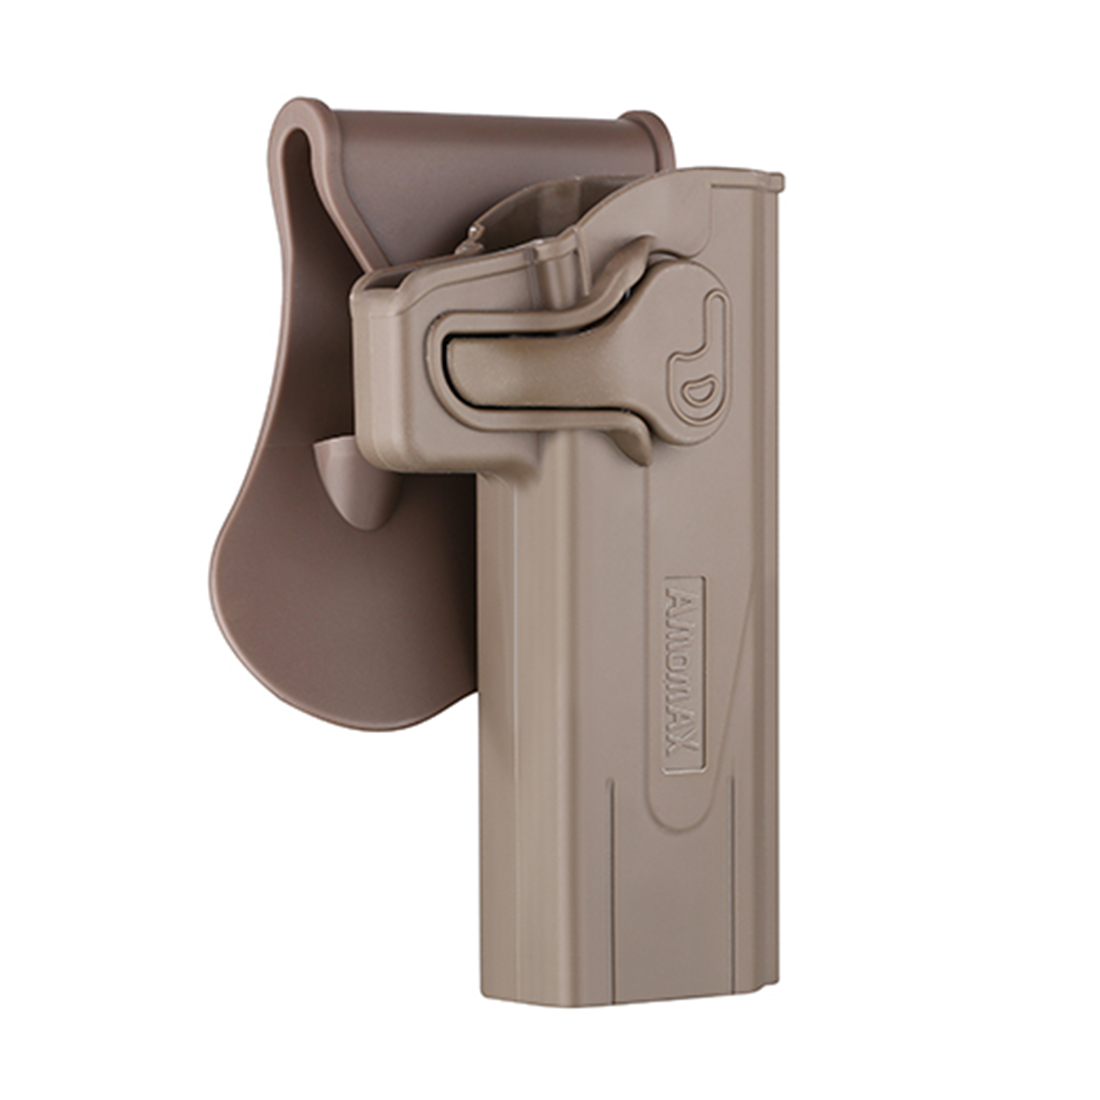 Amomax Adjustable Tactical Holster for STI Hi-Capa 2011 Series Blaster/ Tokyo Marui / WE / KWA / KJW - Right-handed Tan